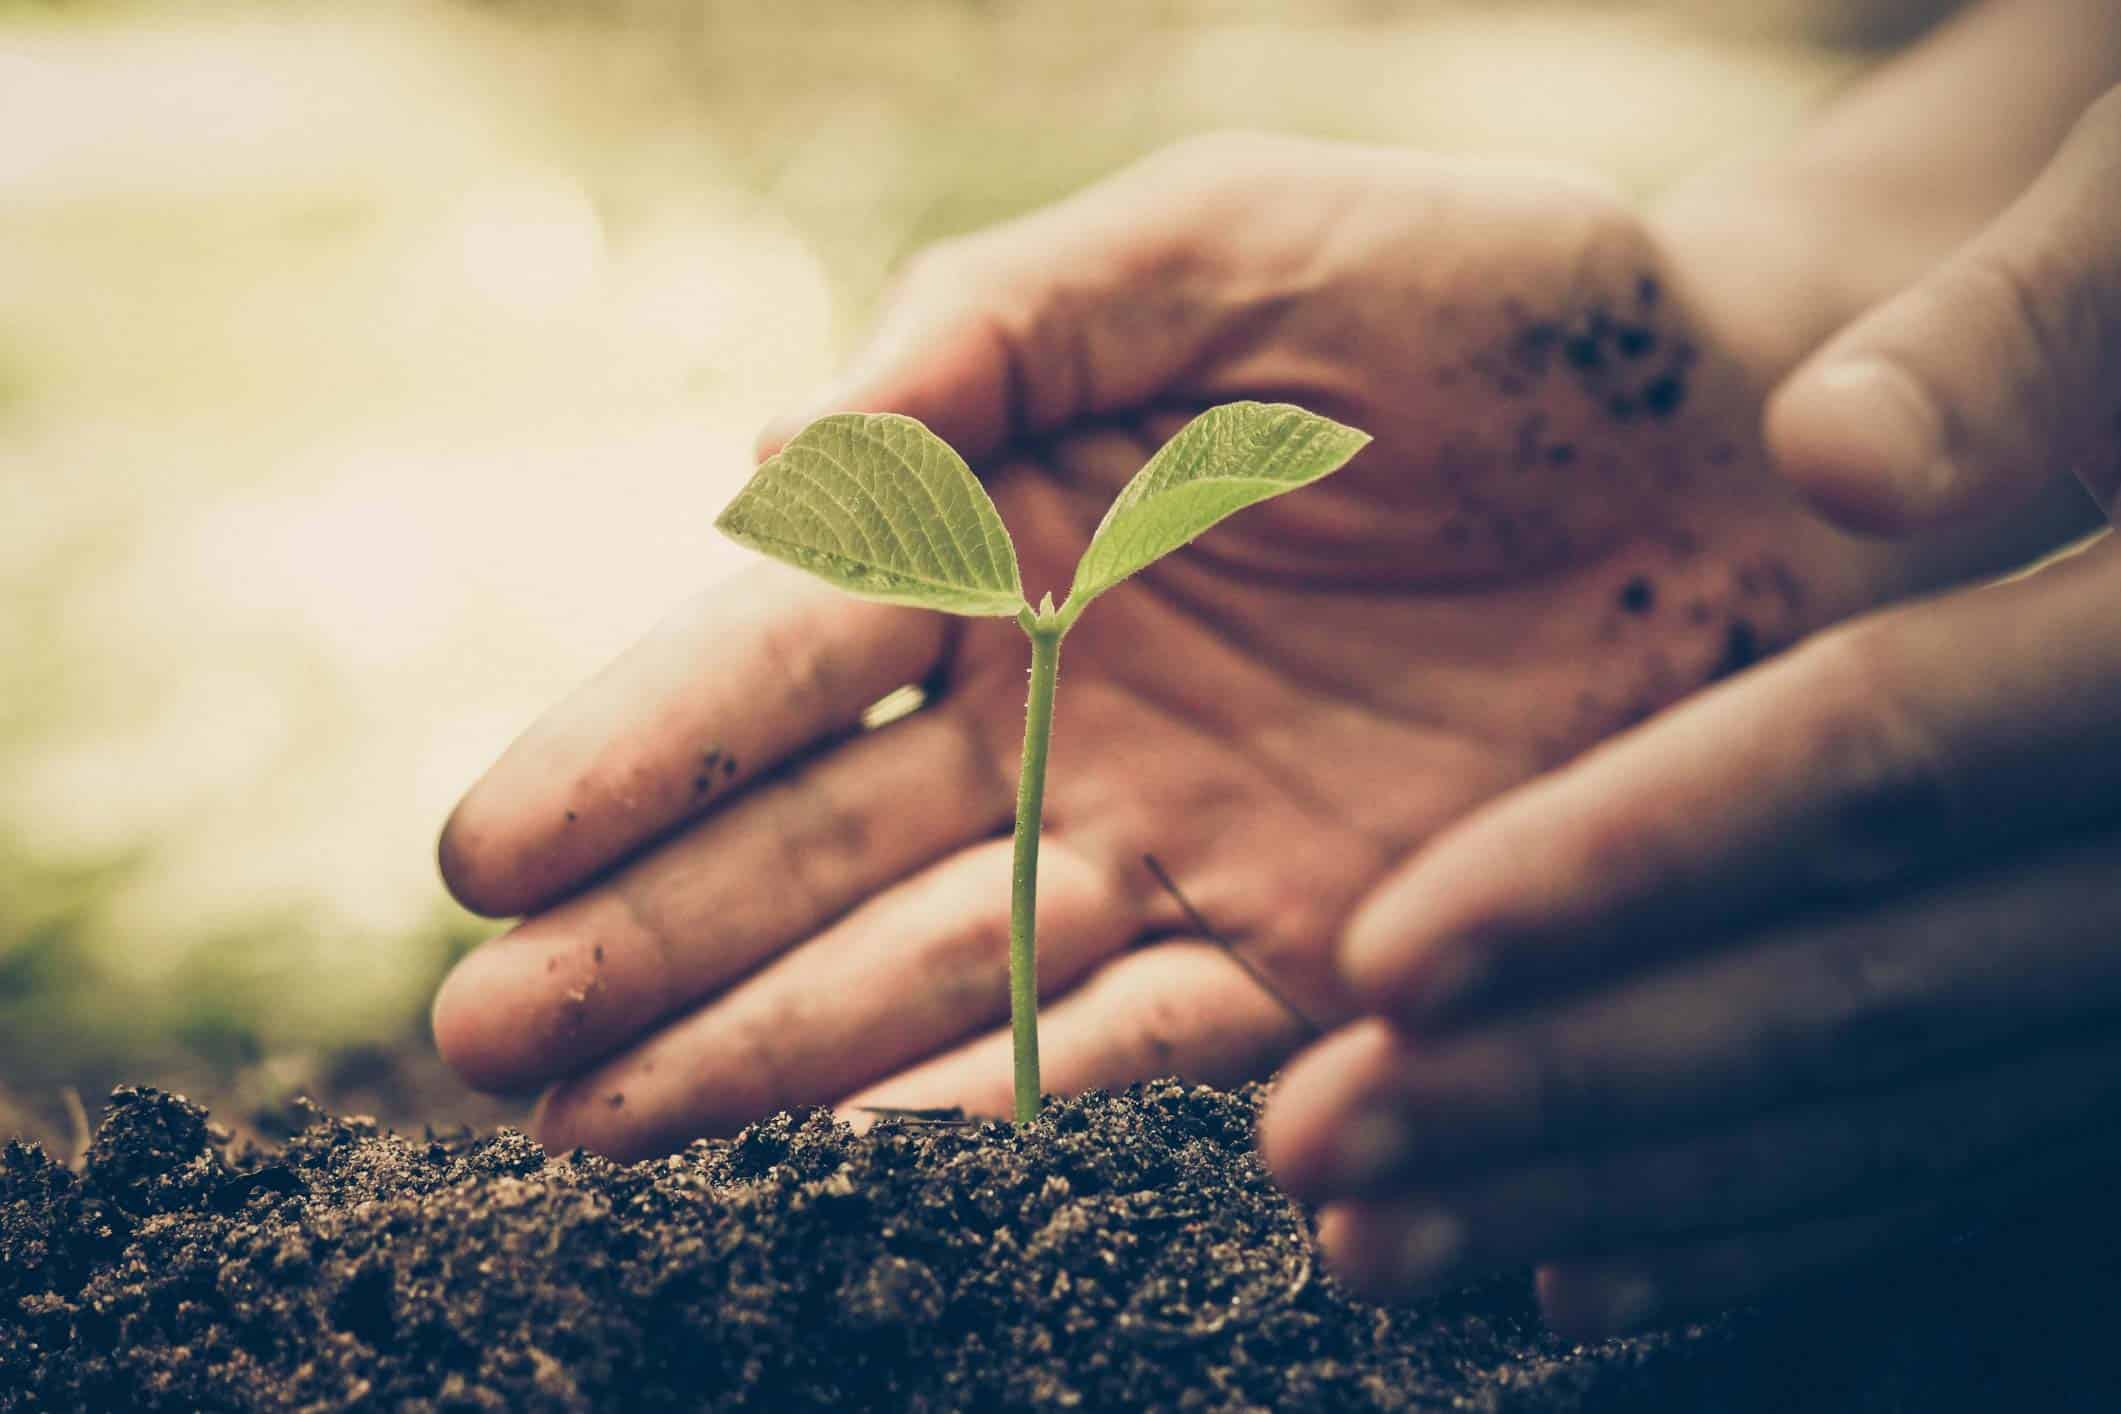 Are You Really Ready to Grow? | Mekanic